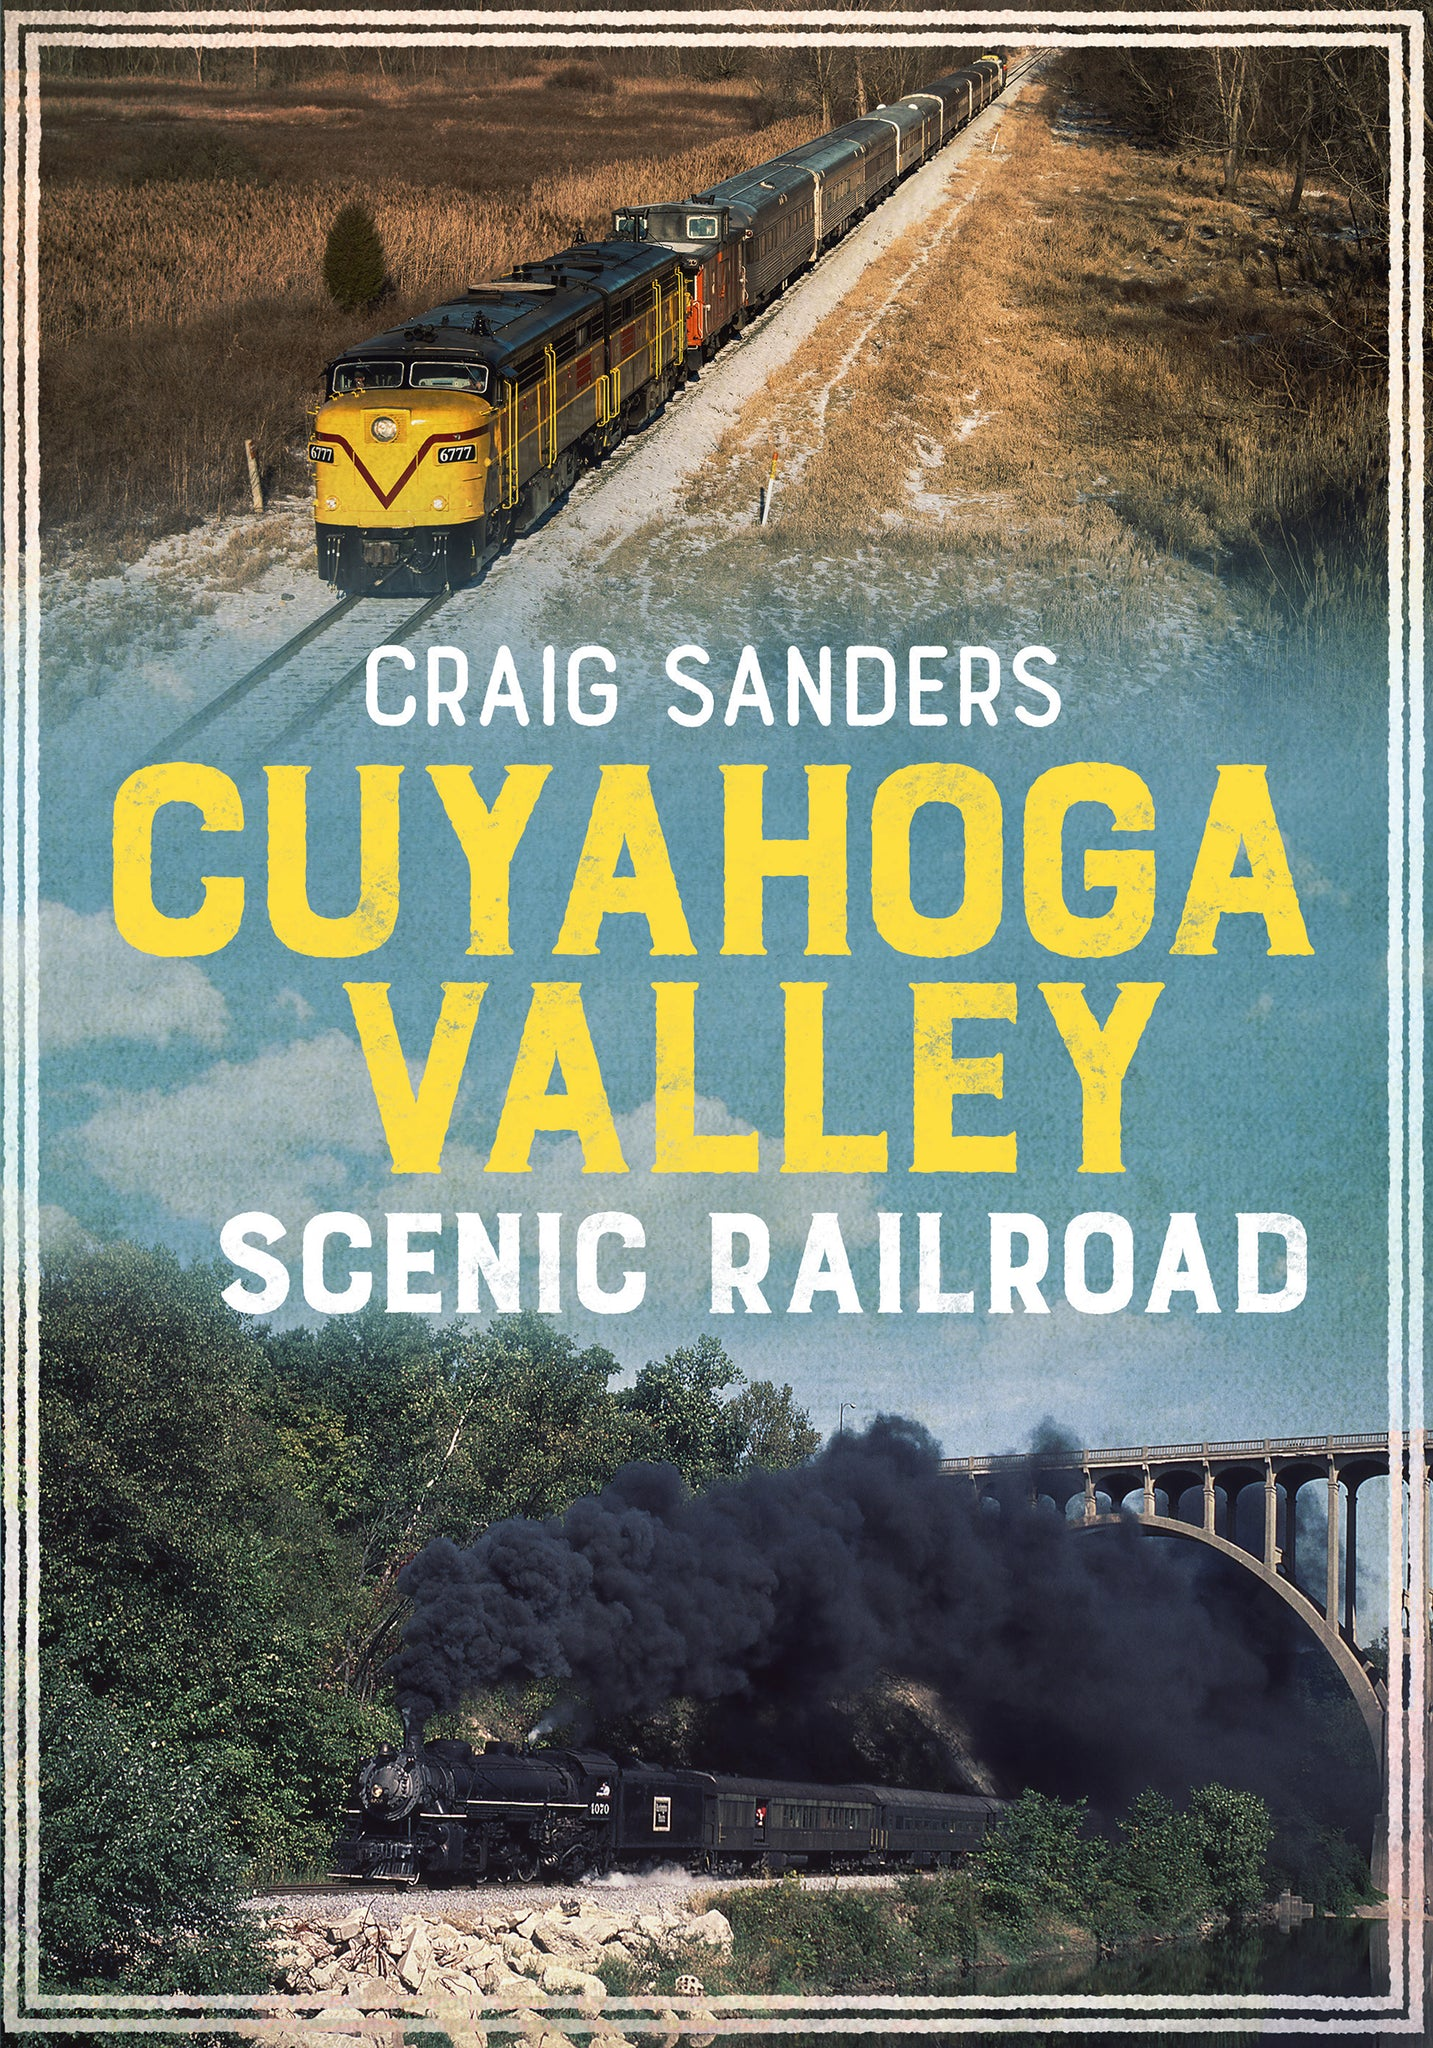 Cuyahoga Valley Scenic Railroad - published by America Through Time